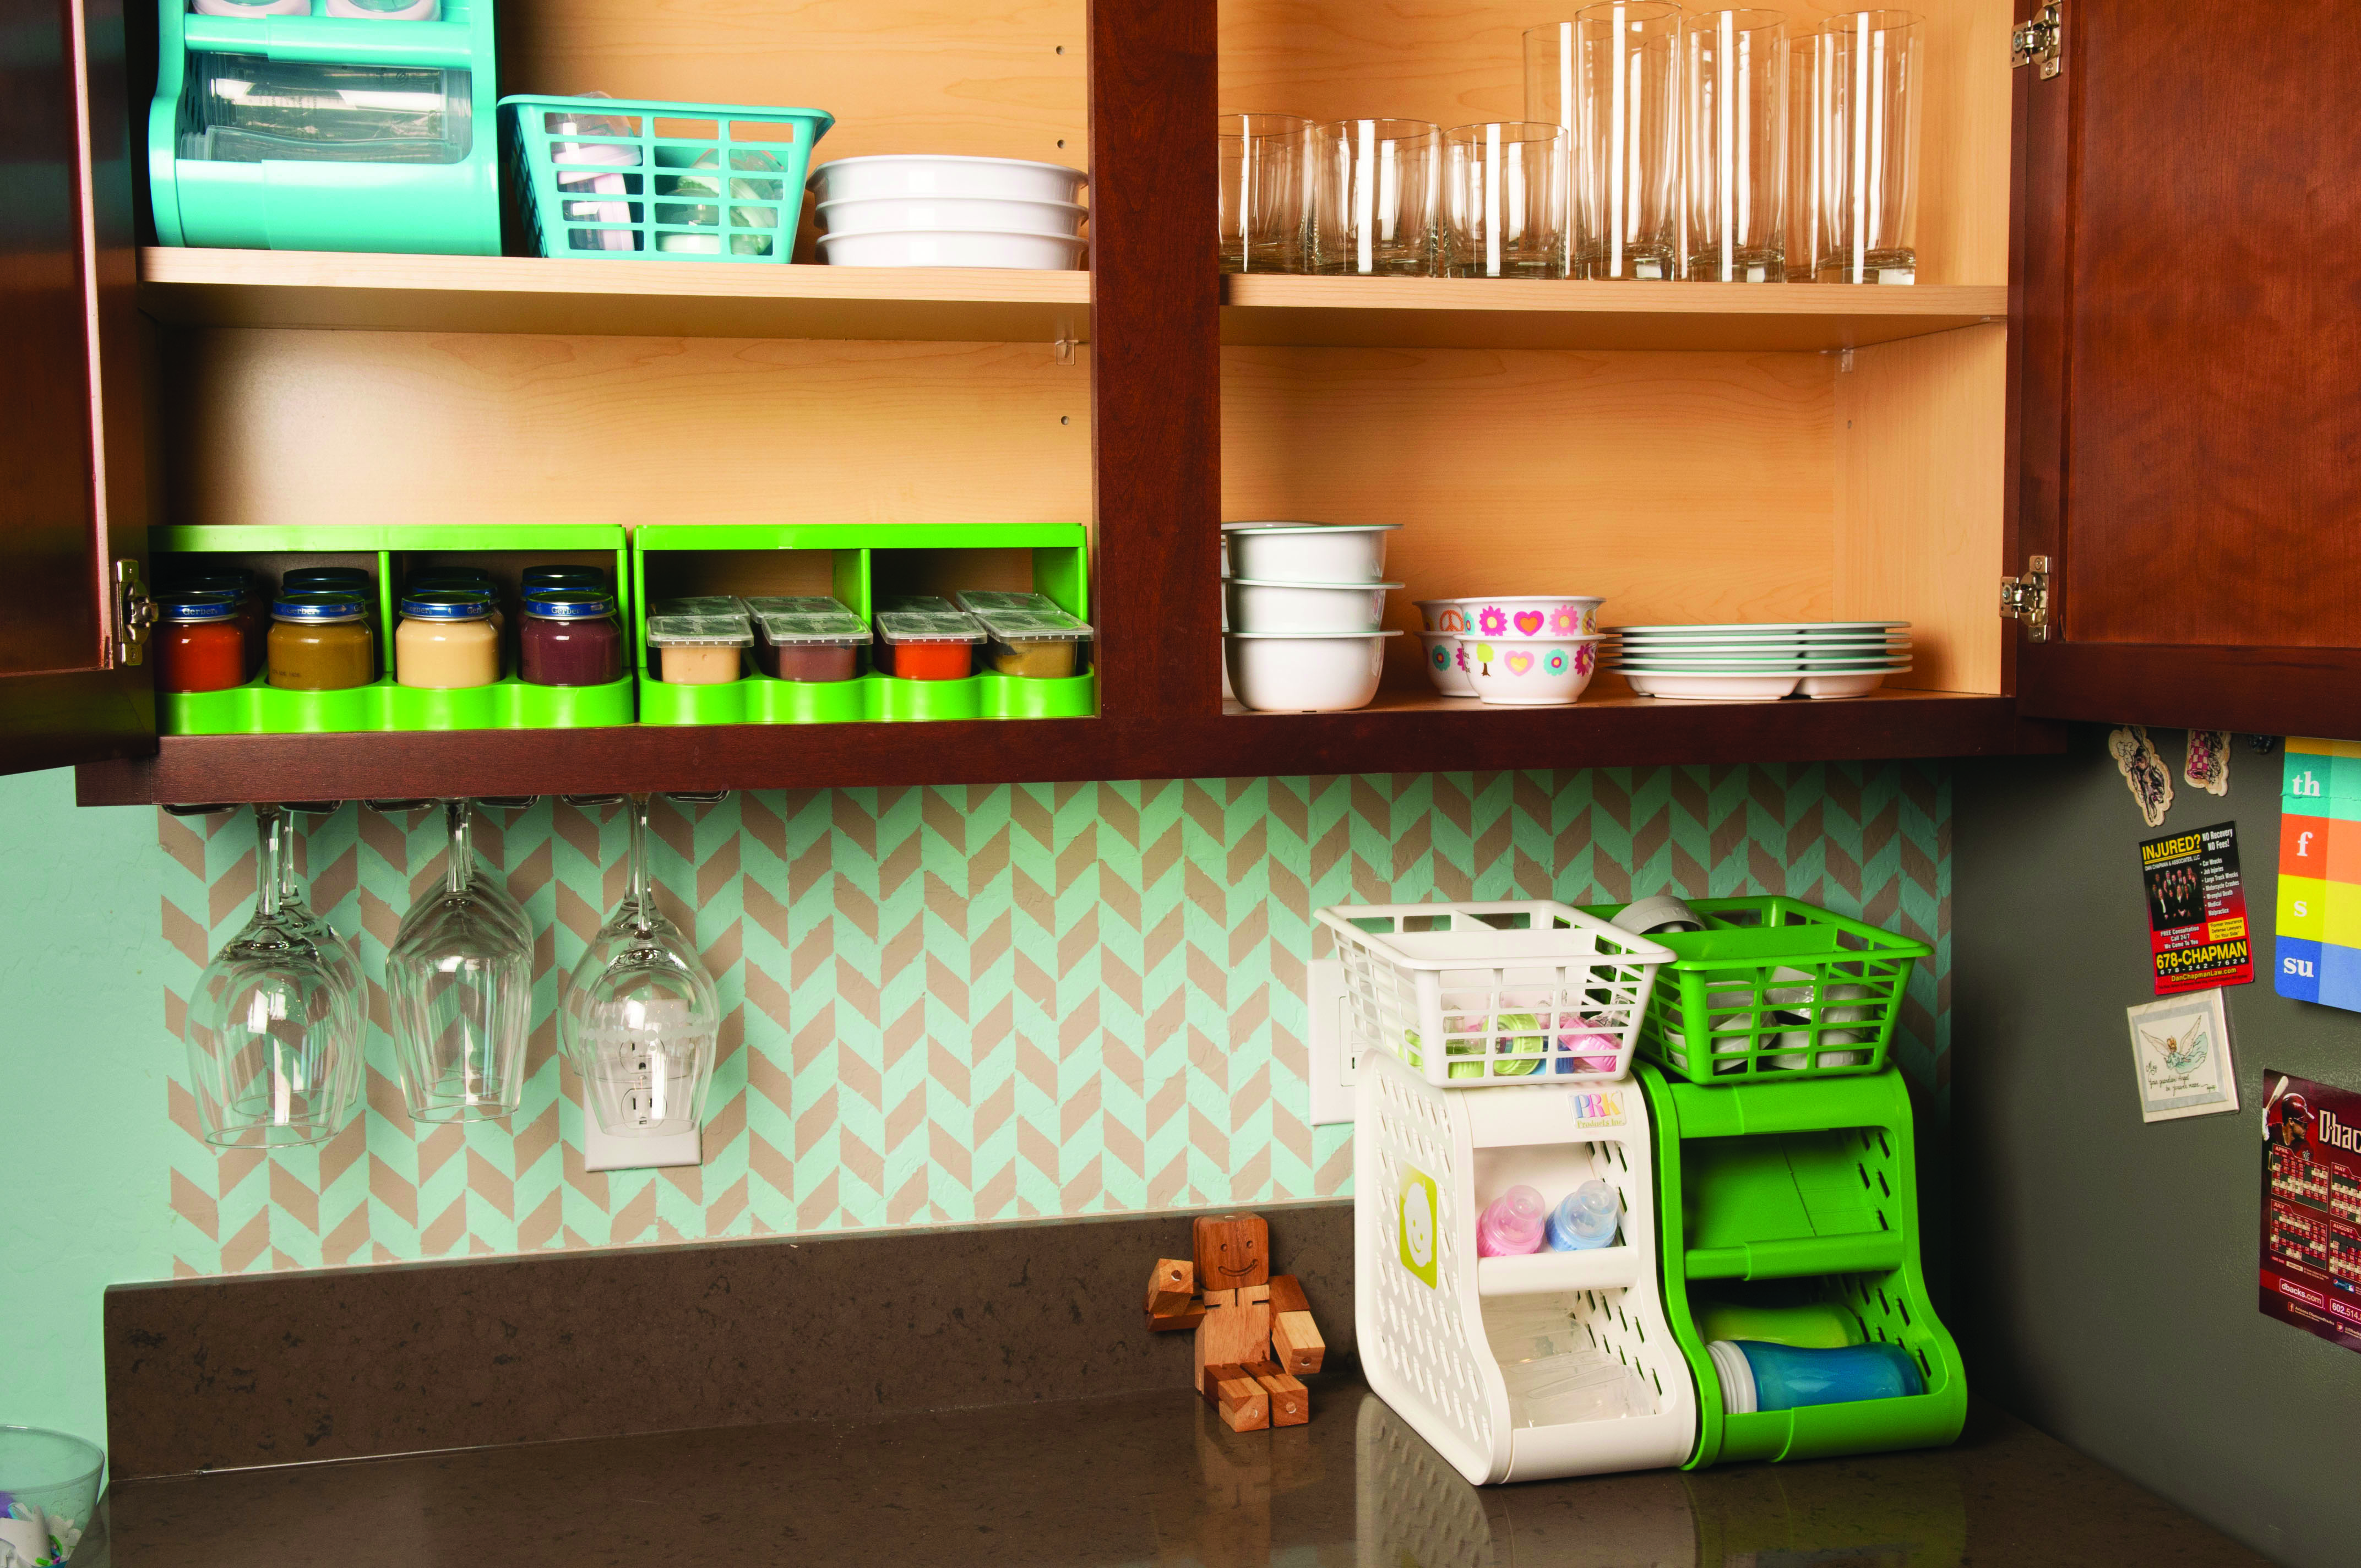 Baby food and bottle storage ideas